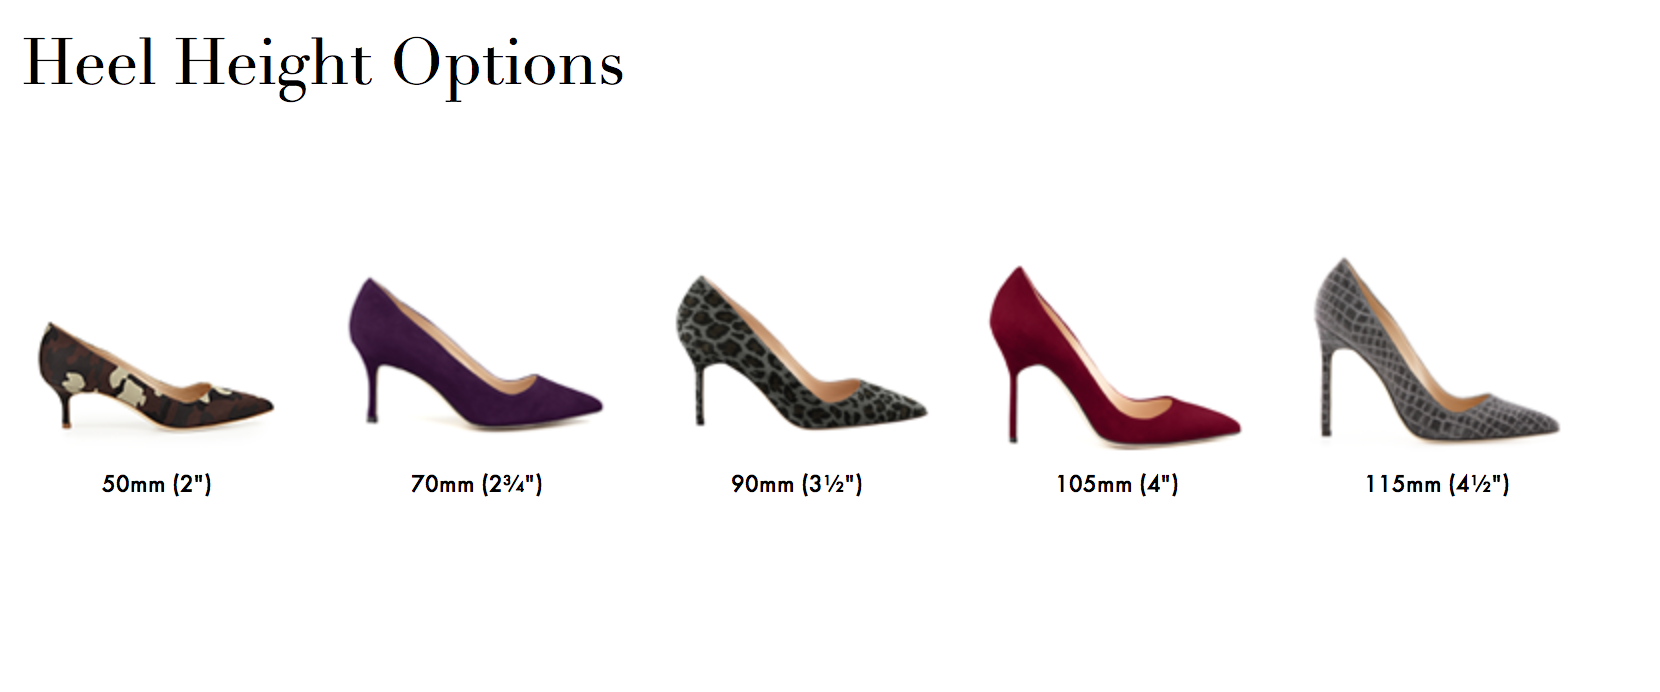 Heel height options with proper measurements.